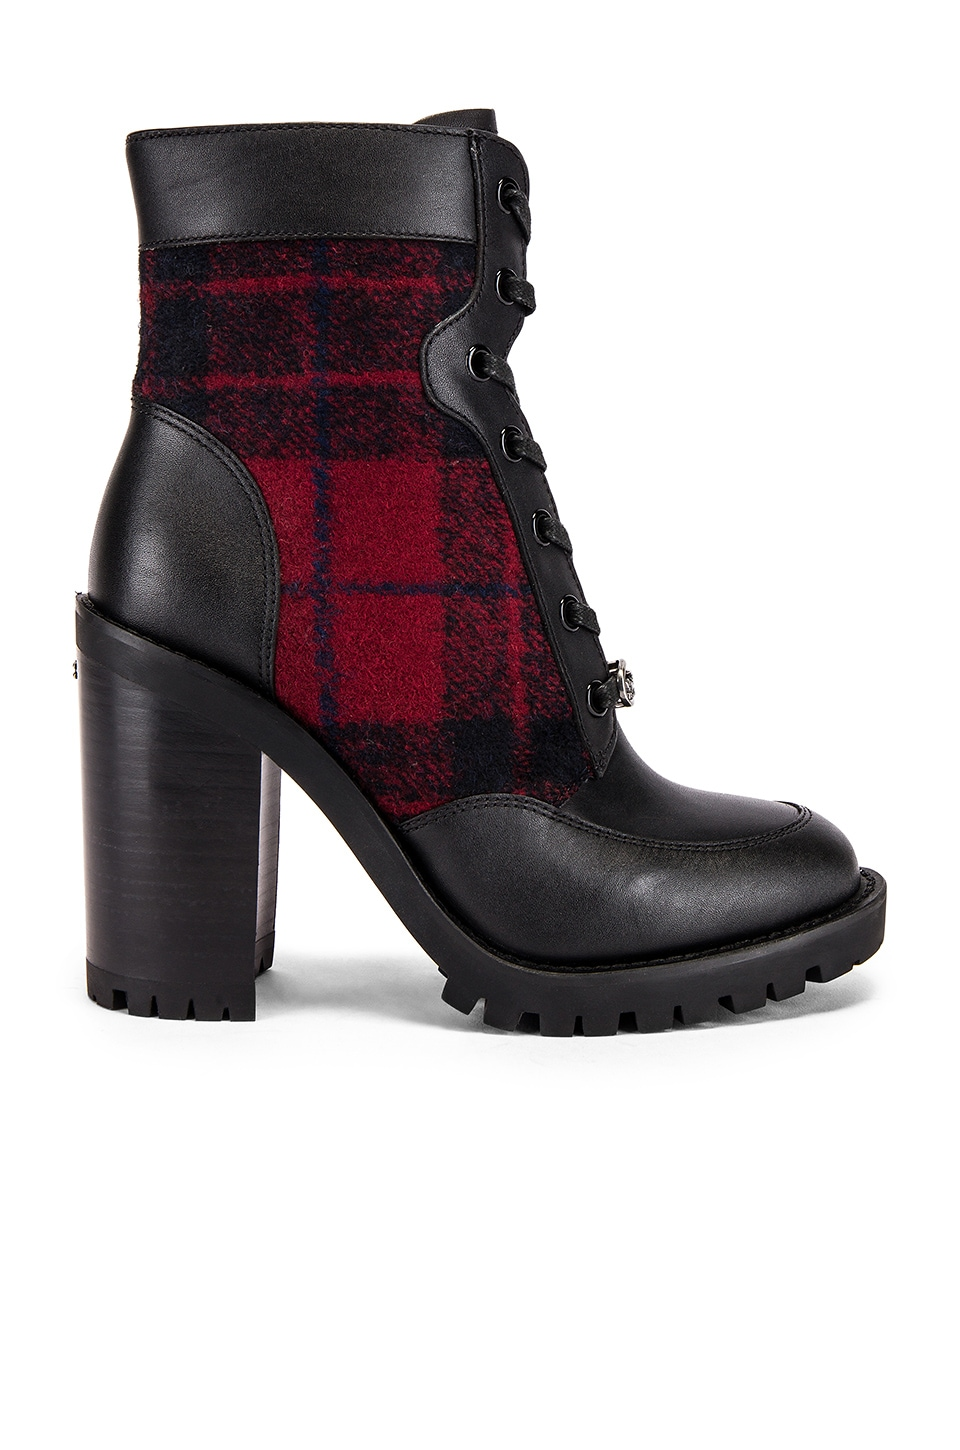 Coach 1941 Hedy Lace Up Bootie in Red & Black